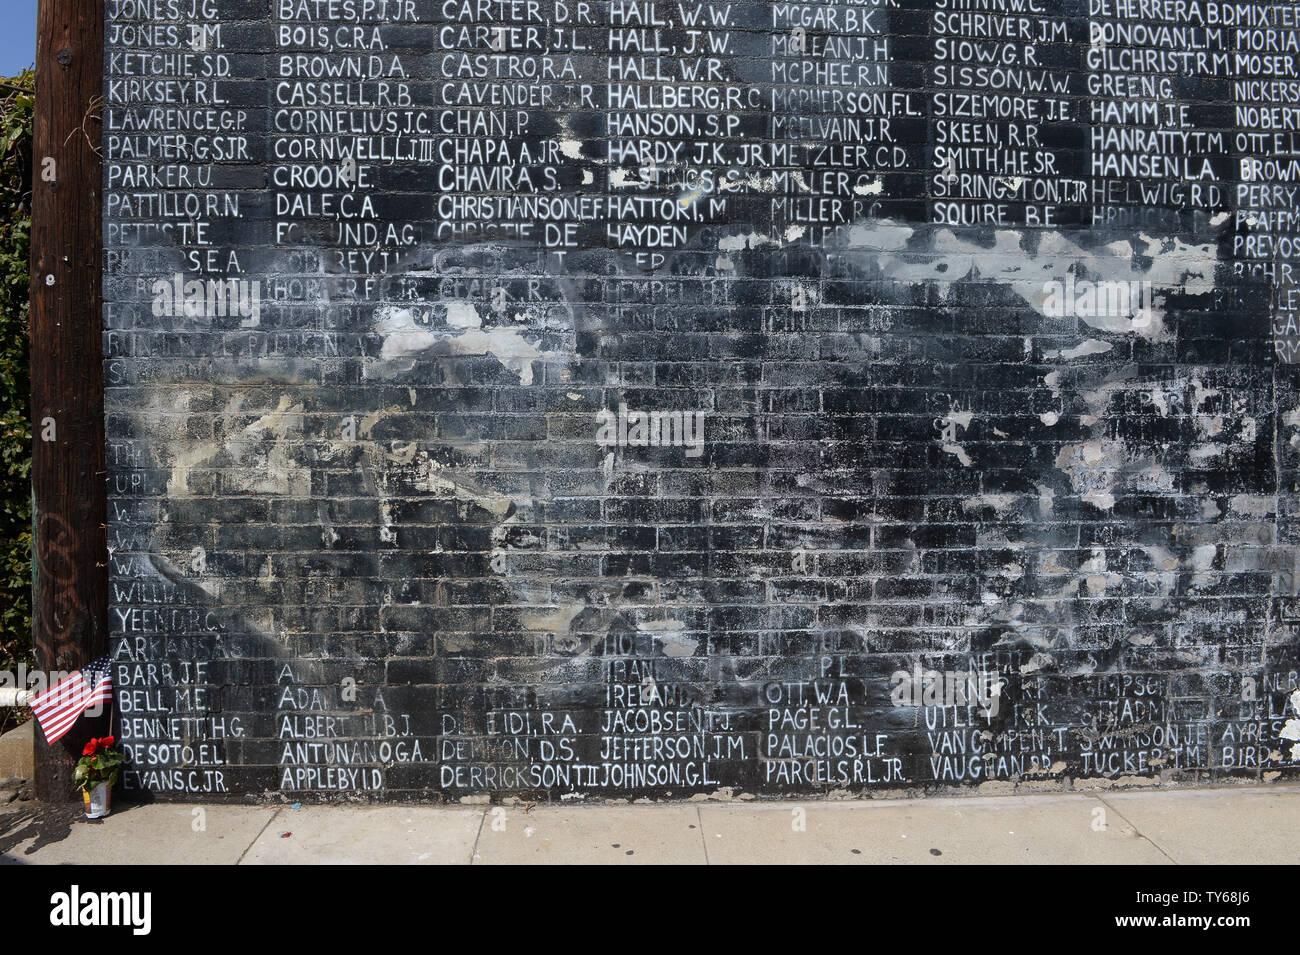 Vietnam War Memorial Defaced High Resolution Stock Photography And Images Alamy